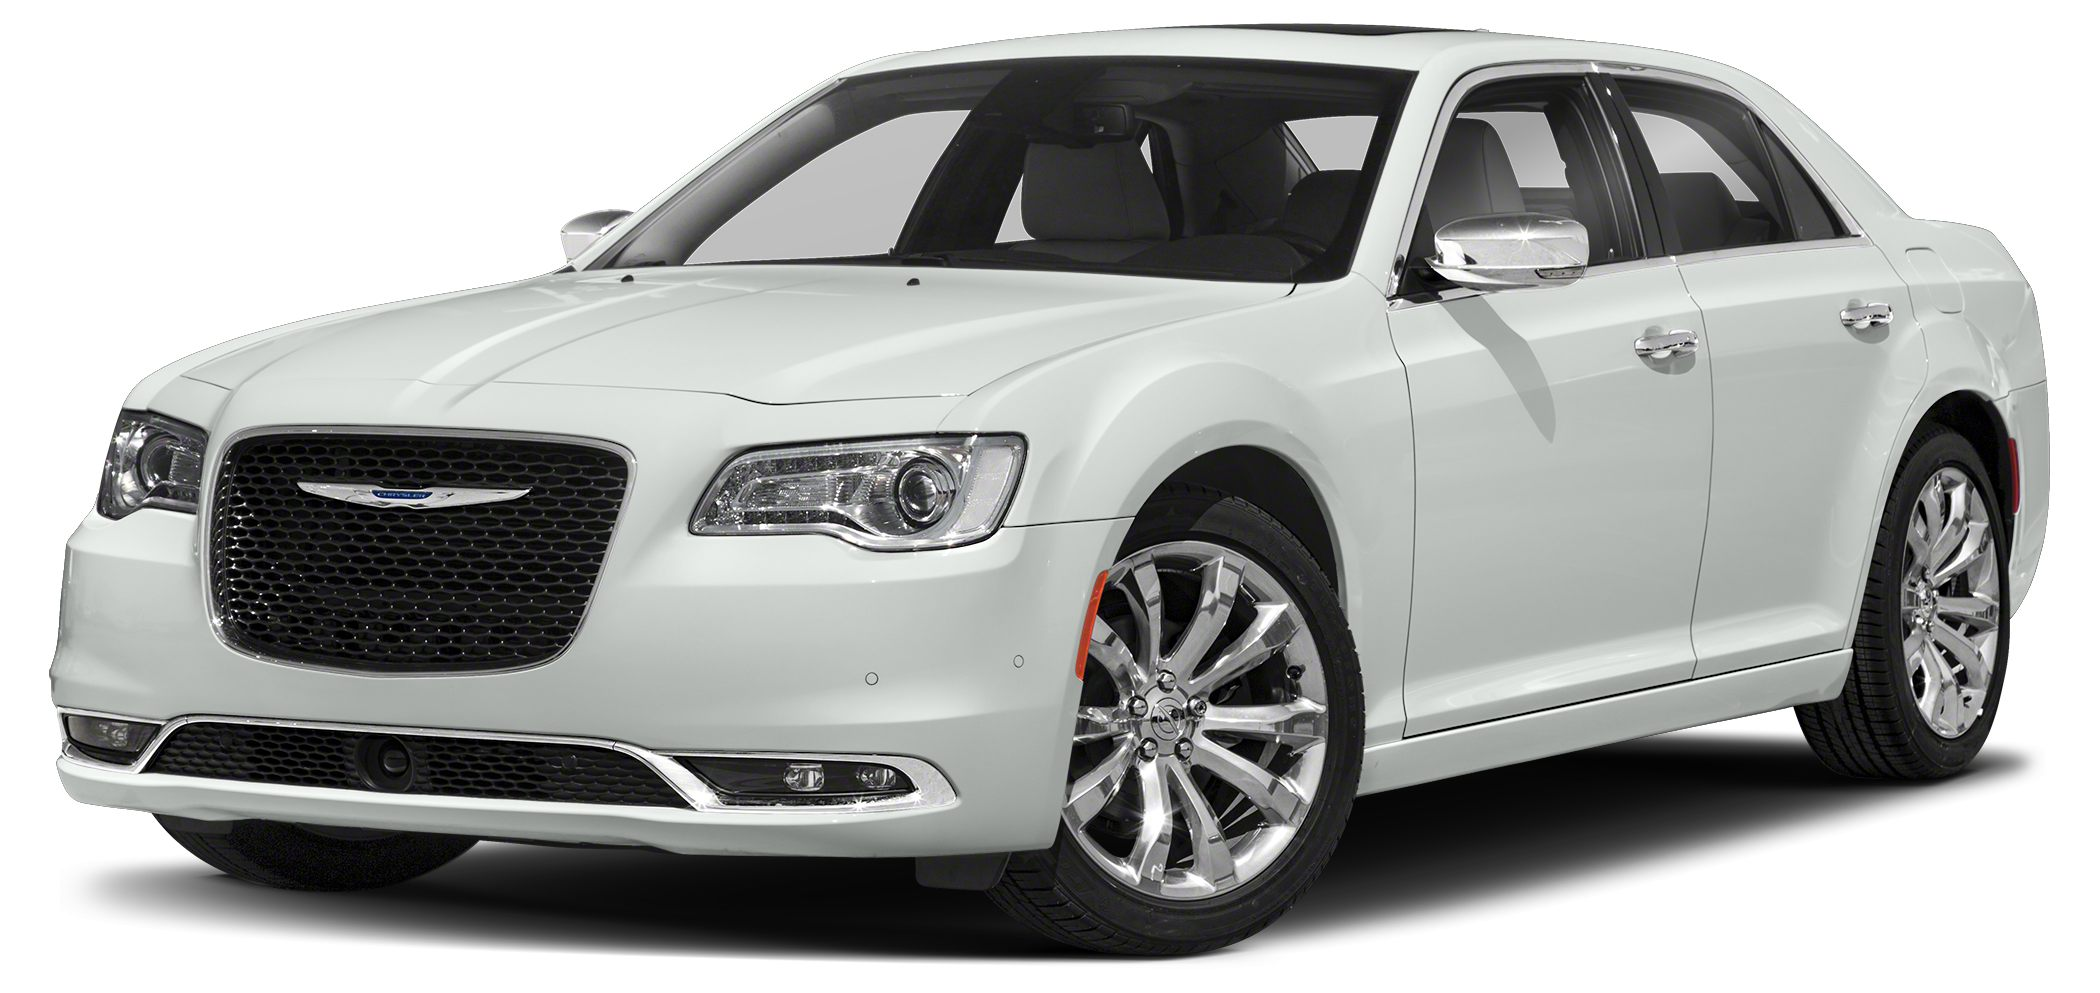 2018 Chrysler 300 Touring This 2018 Chrysler 300 4dr Touring features a 36L V6 Cylinder 6cyl Gaso